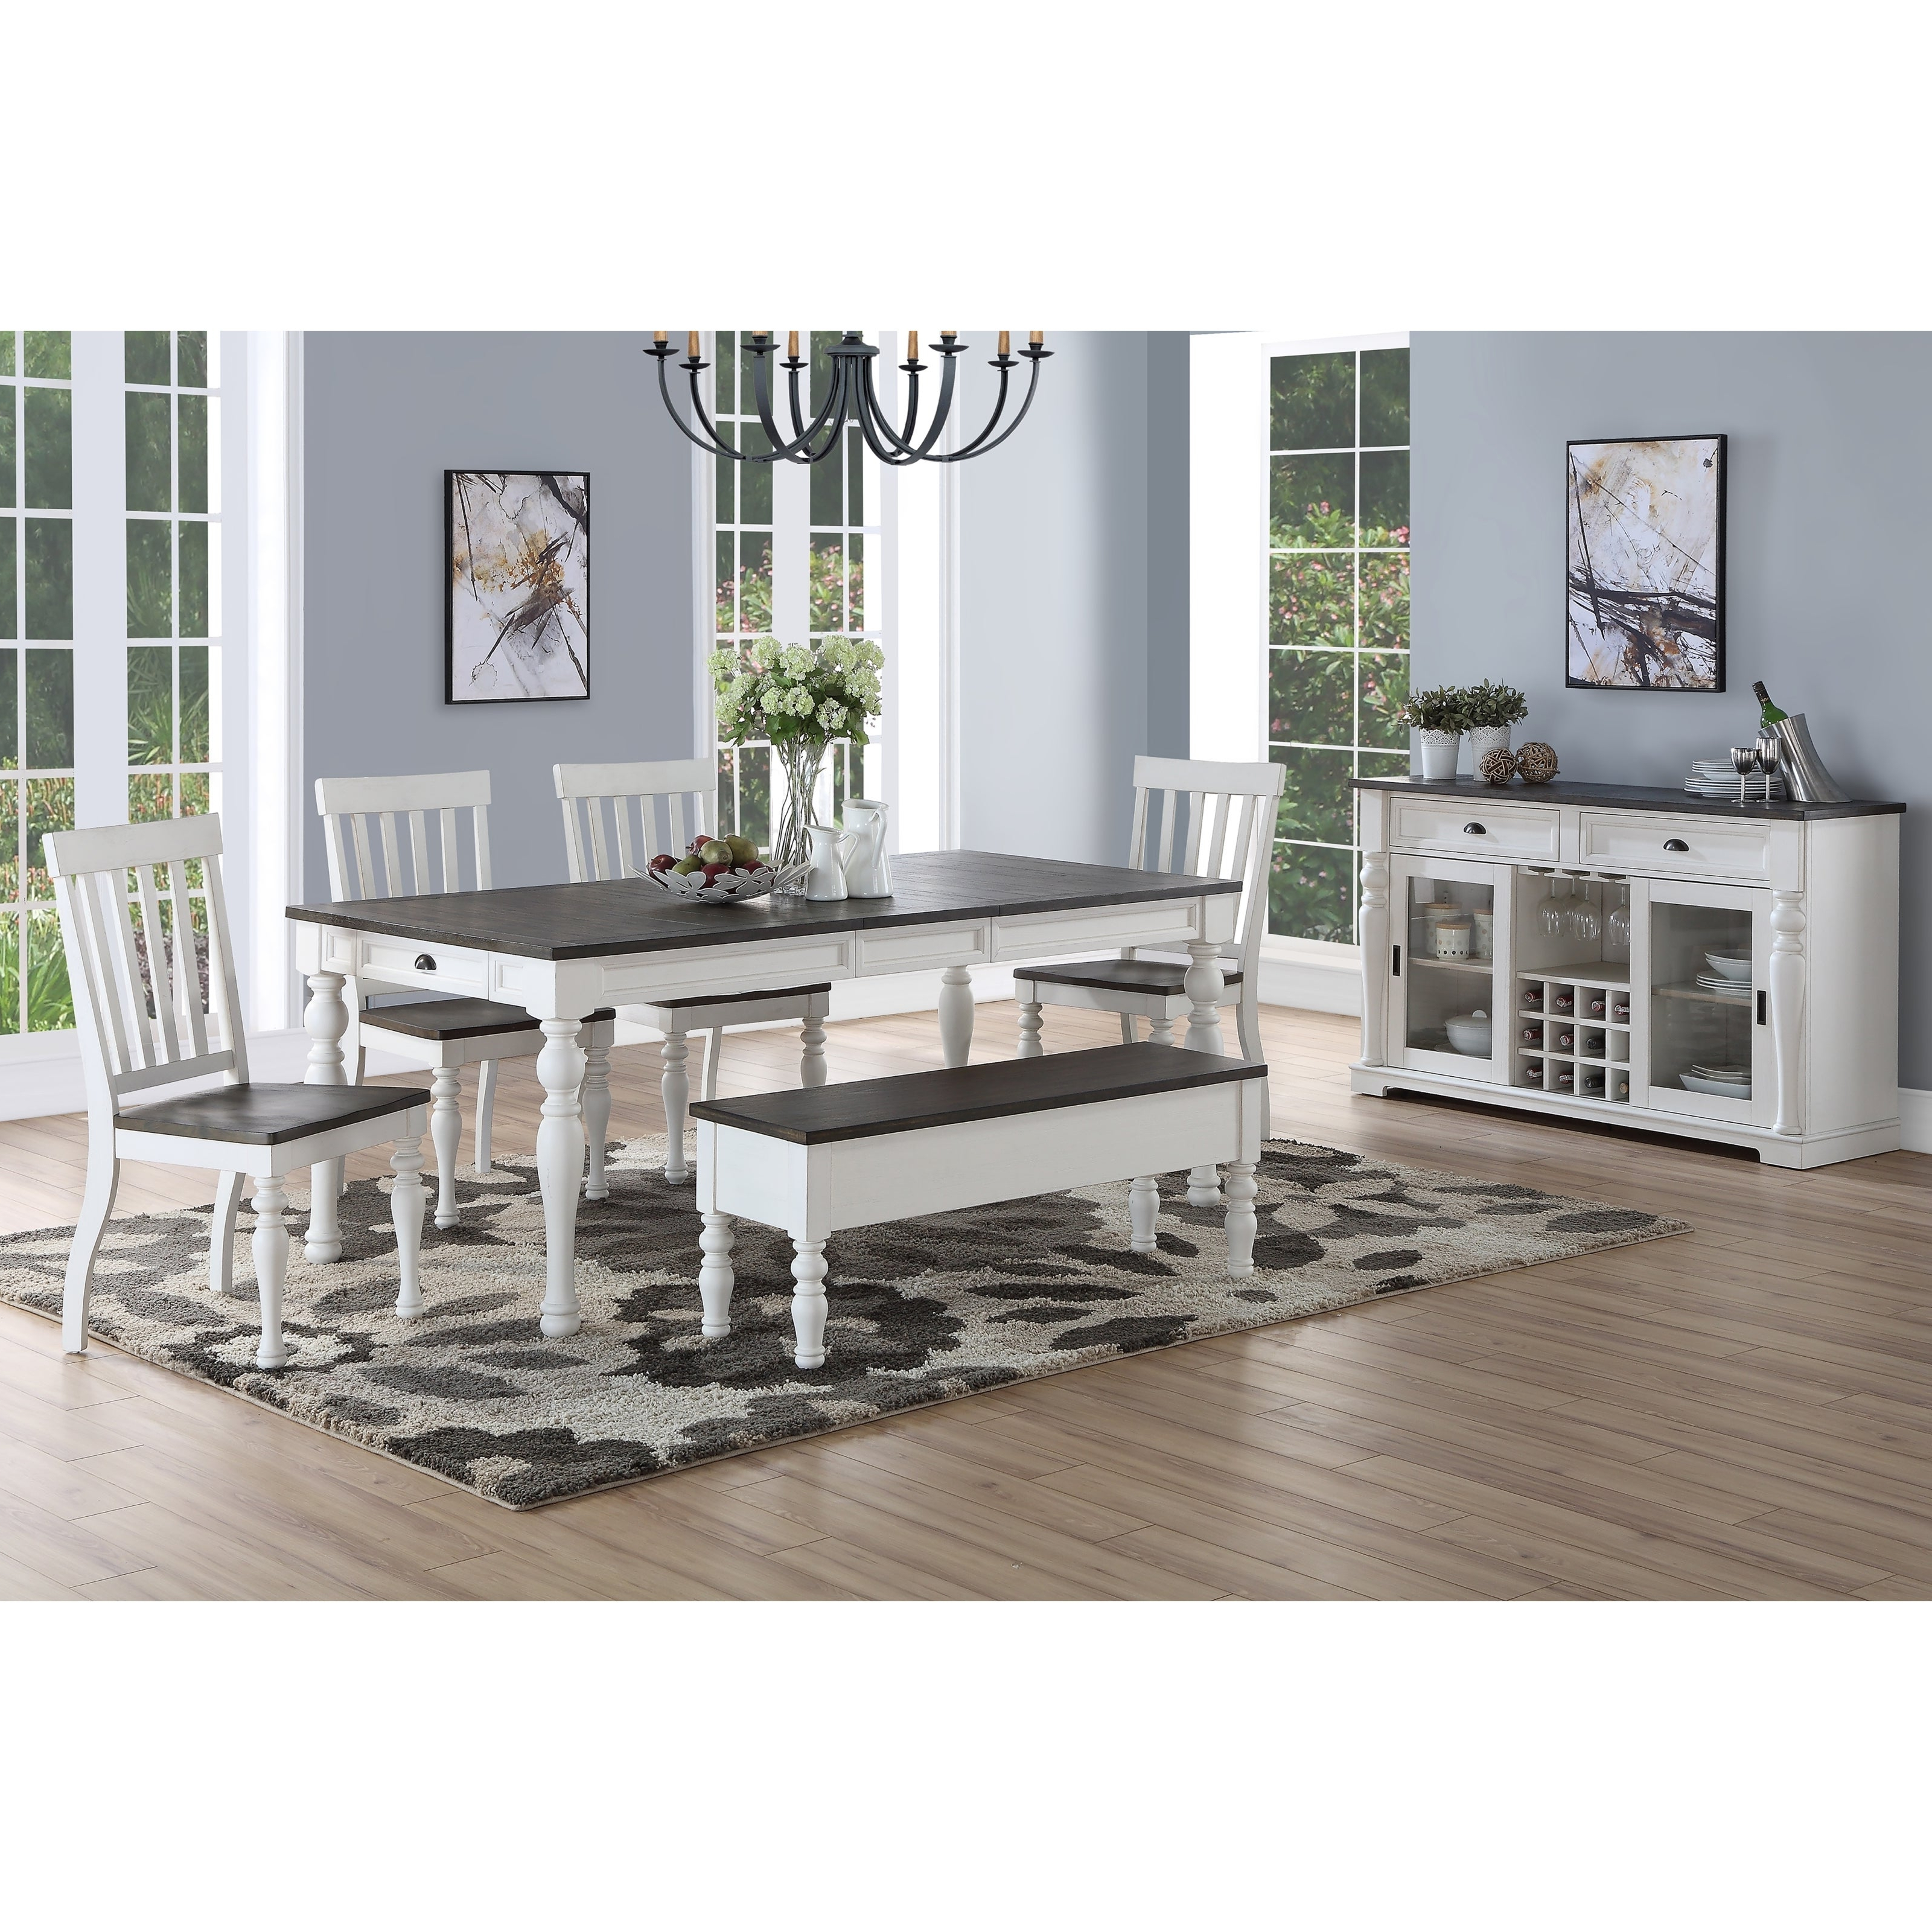 Most Popular Buy 6 Piece Sets Kitchen & Dining Room Sets Online At Overstock With Regard To Osterman 6 Piece Extendable Dining Sets (Set Of 6) (View 6 of 25)